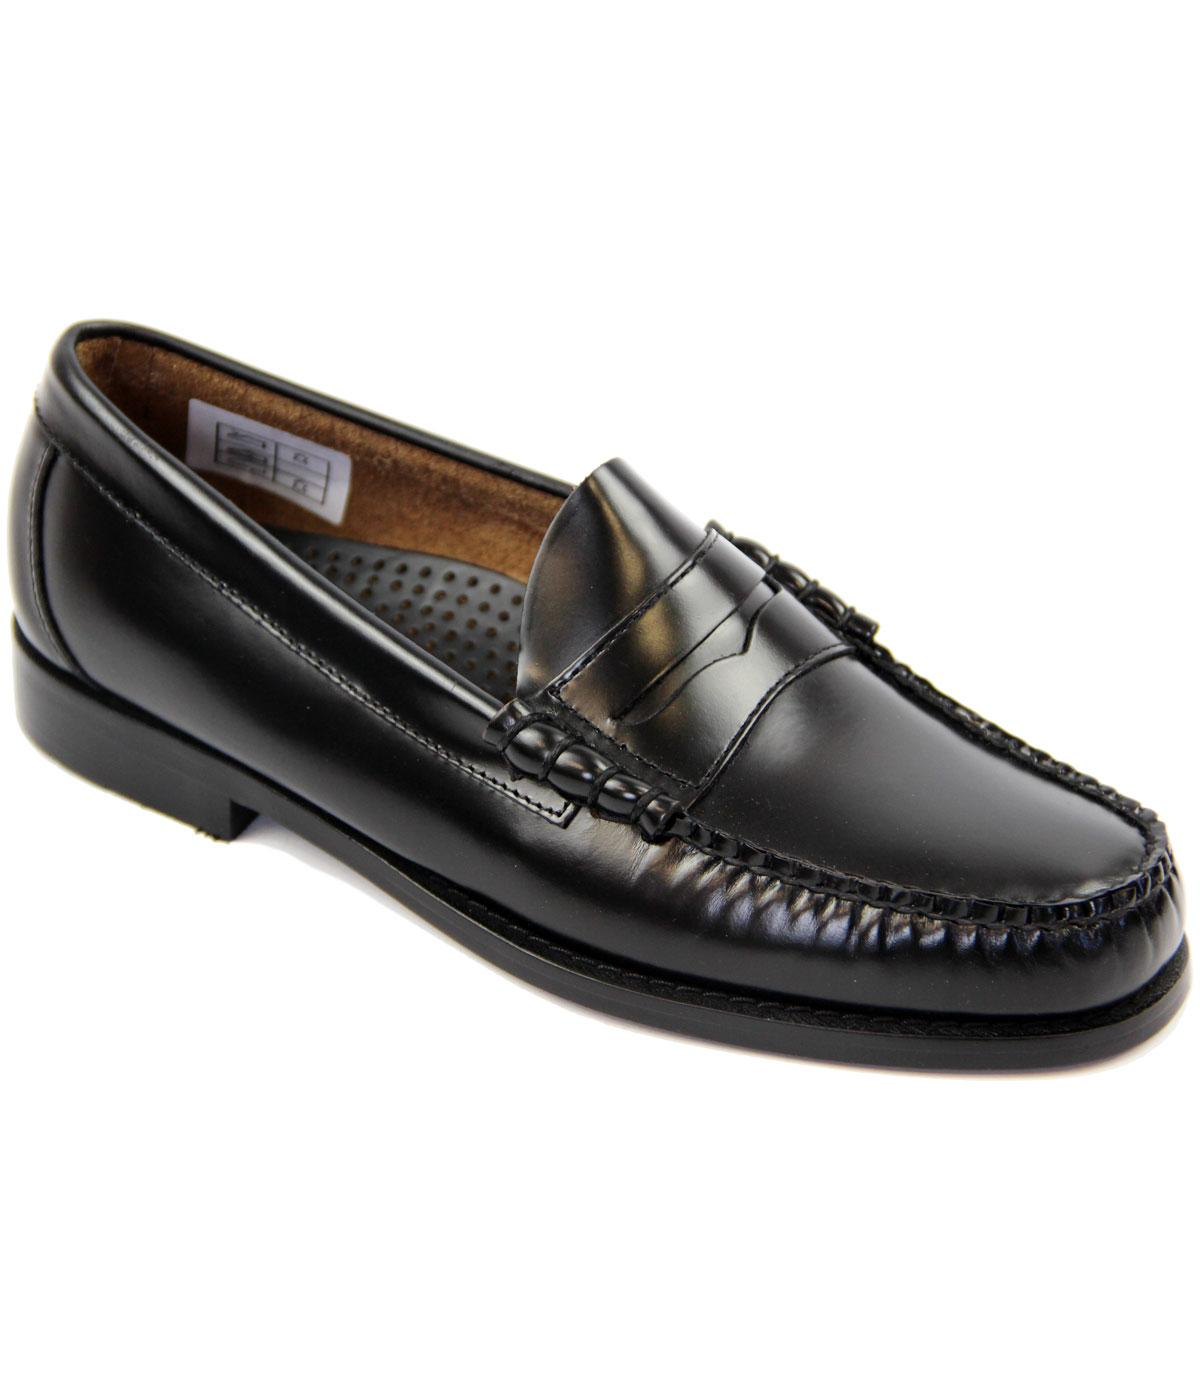 Larson BASS WEEJUNS Mod Beef Roll Penny Loafers